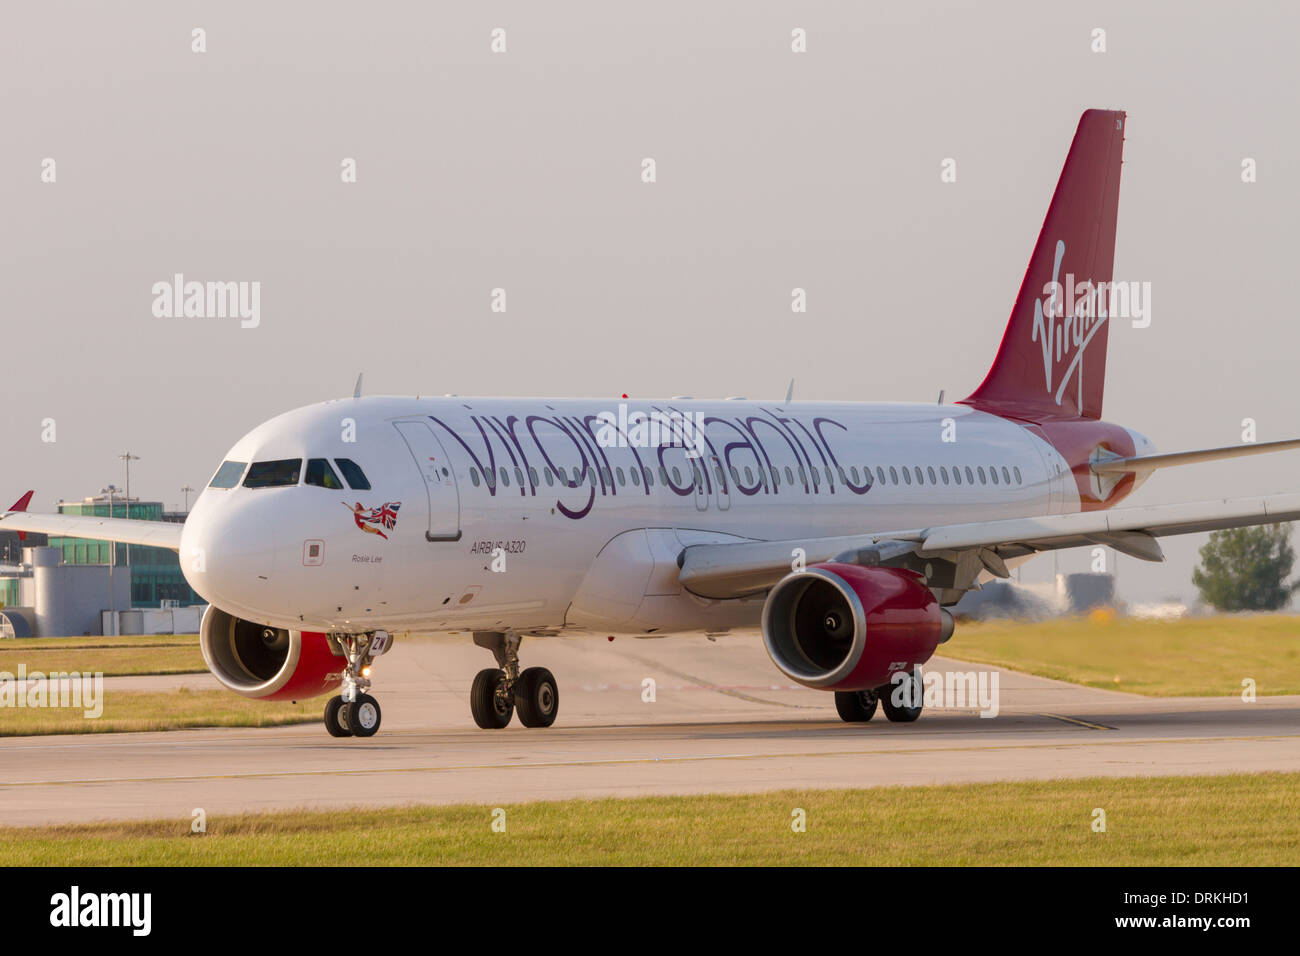 Virgin Atlantic Airbus A320 on runway for take off at Manchester Airport - Stock Image